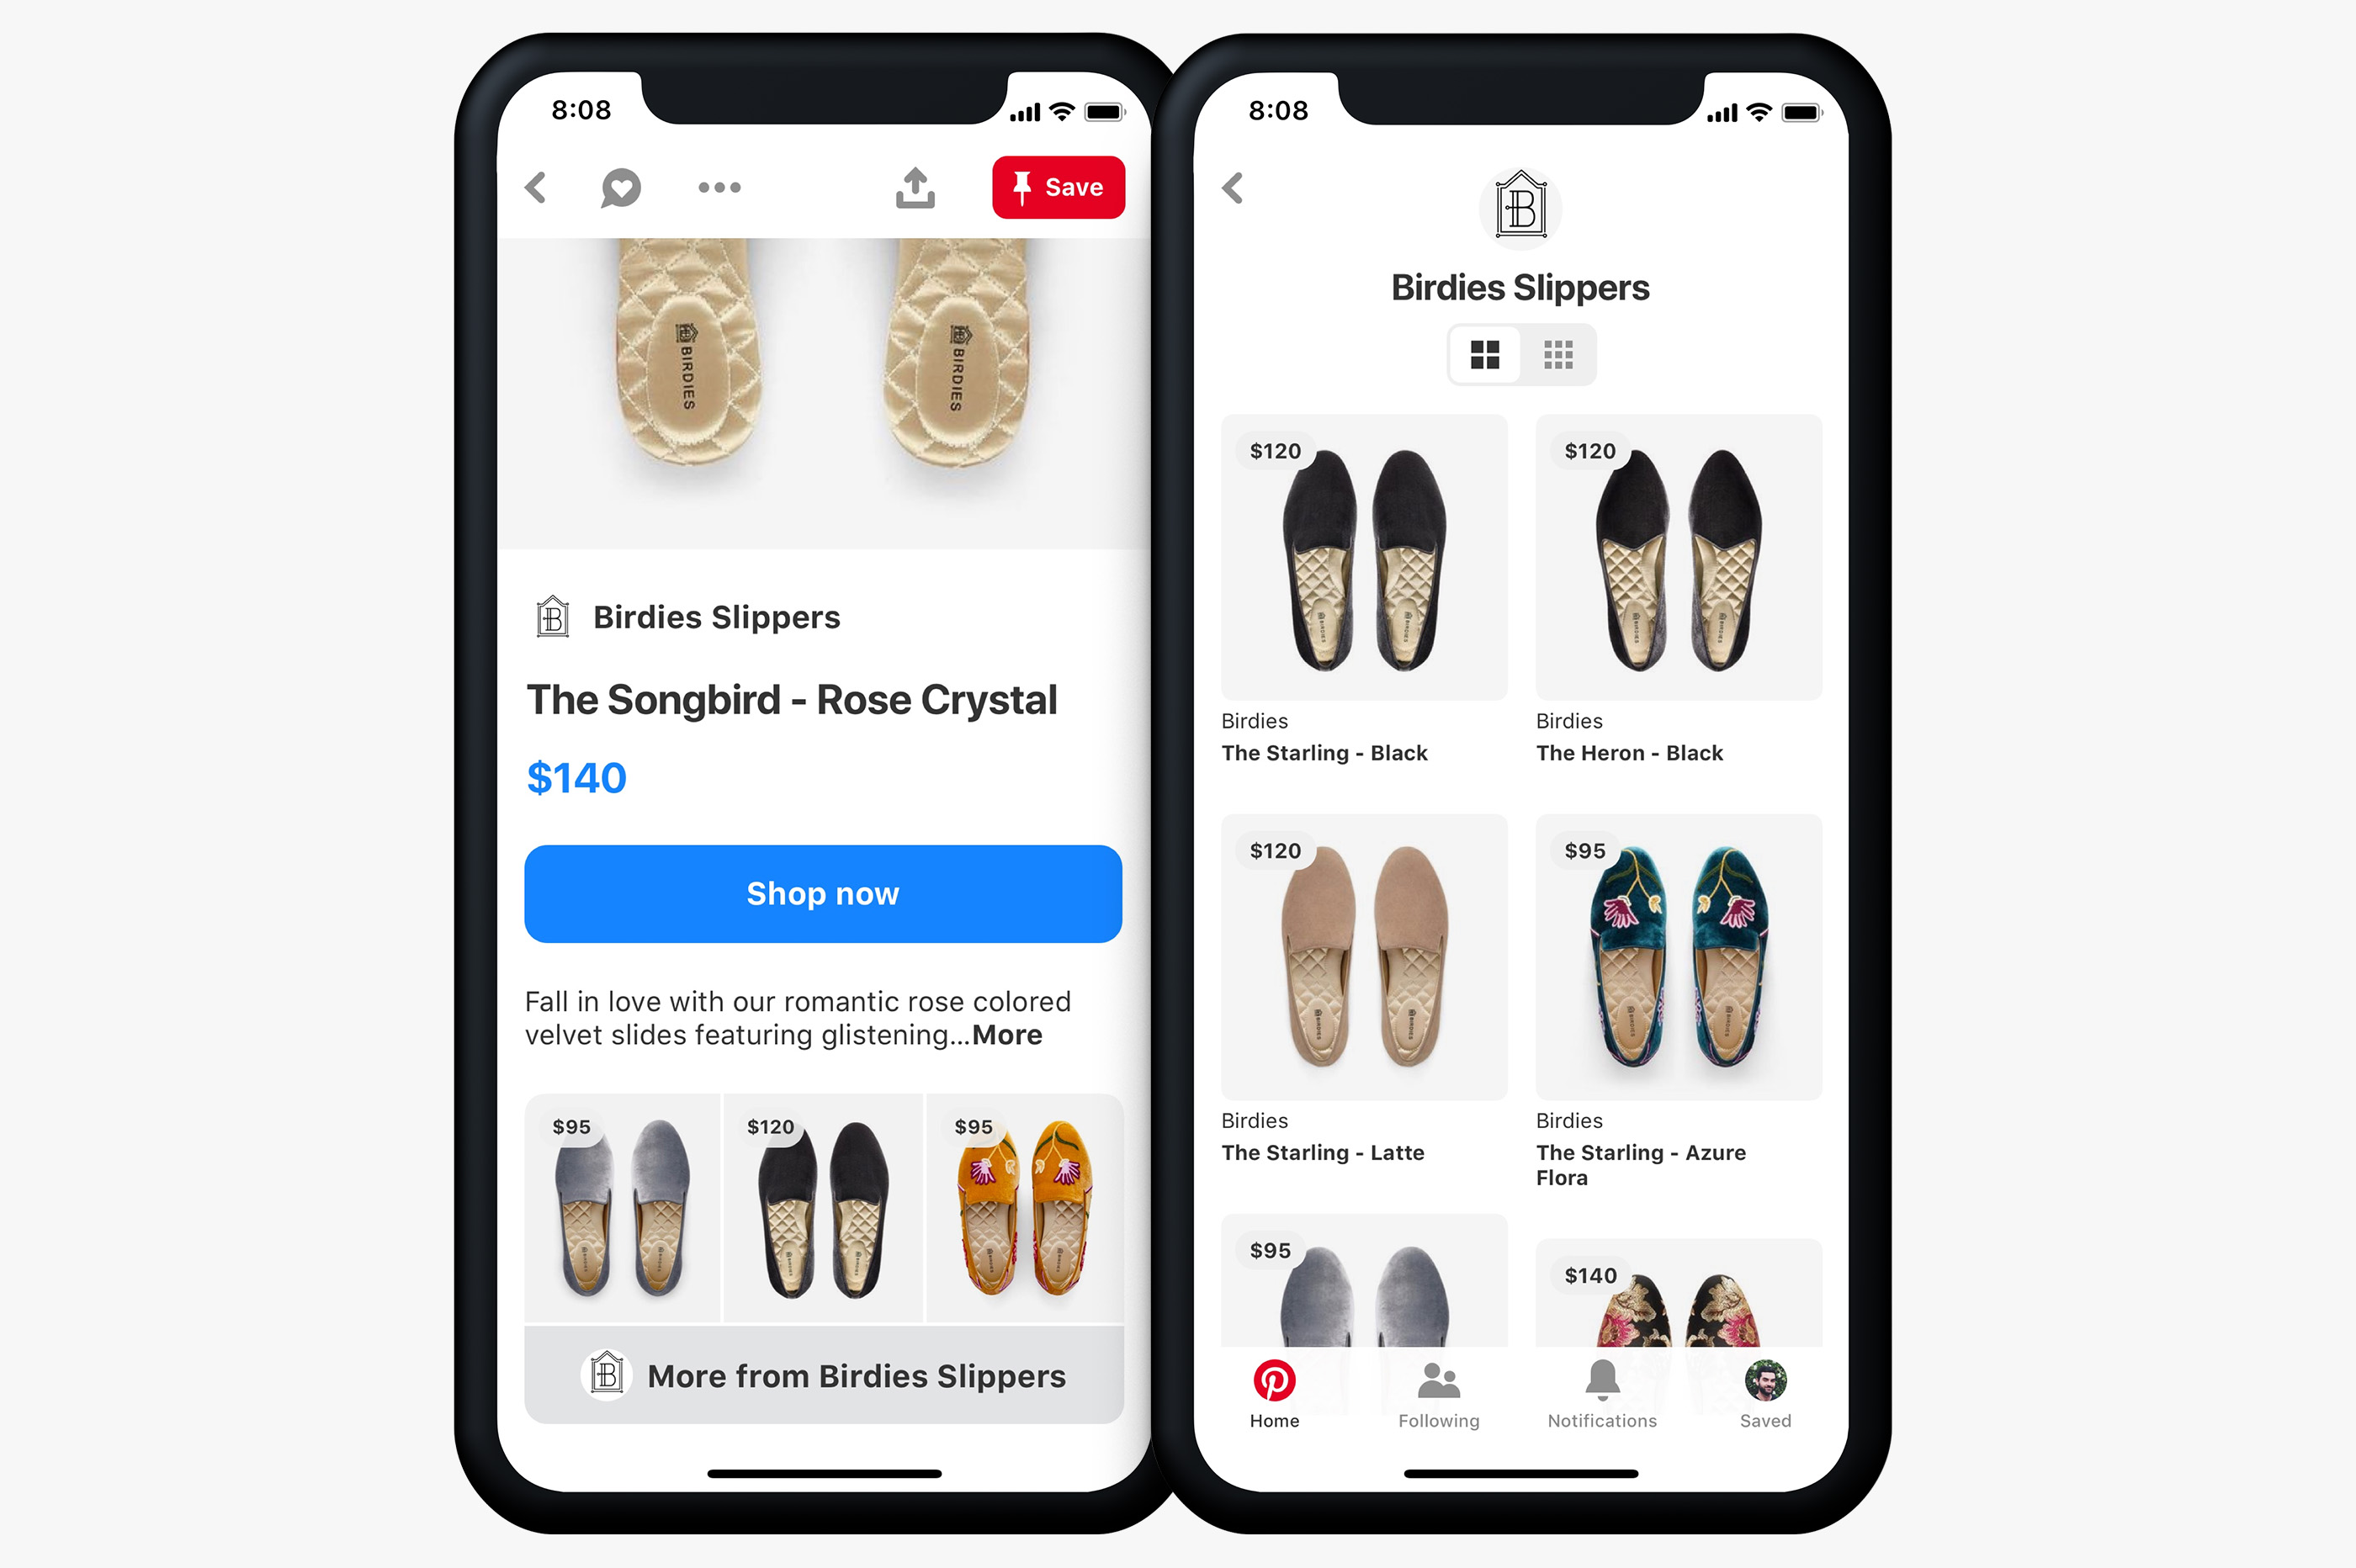 Pinterest Adds a Shopping Section to its Home Feed